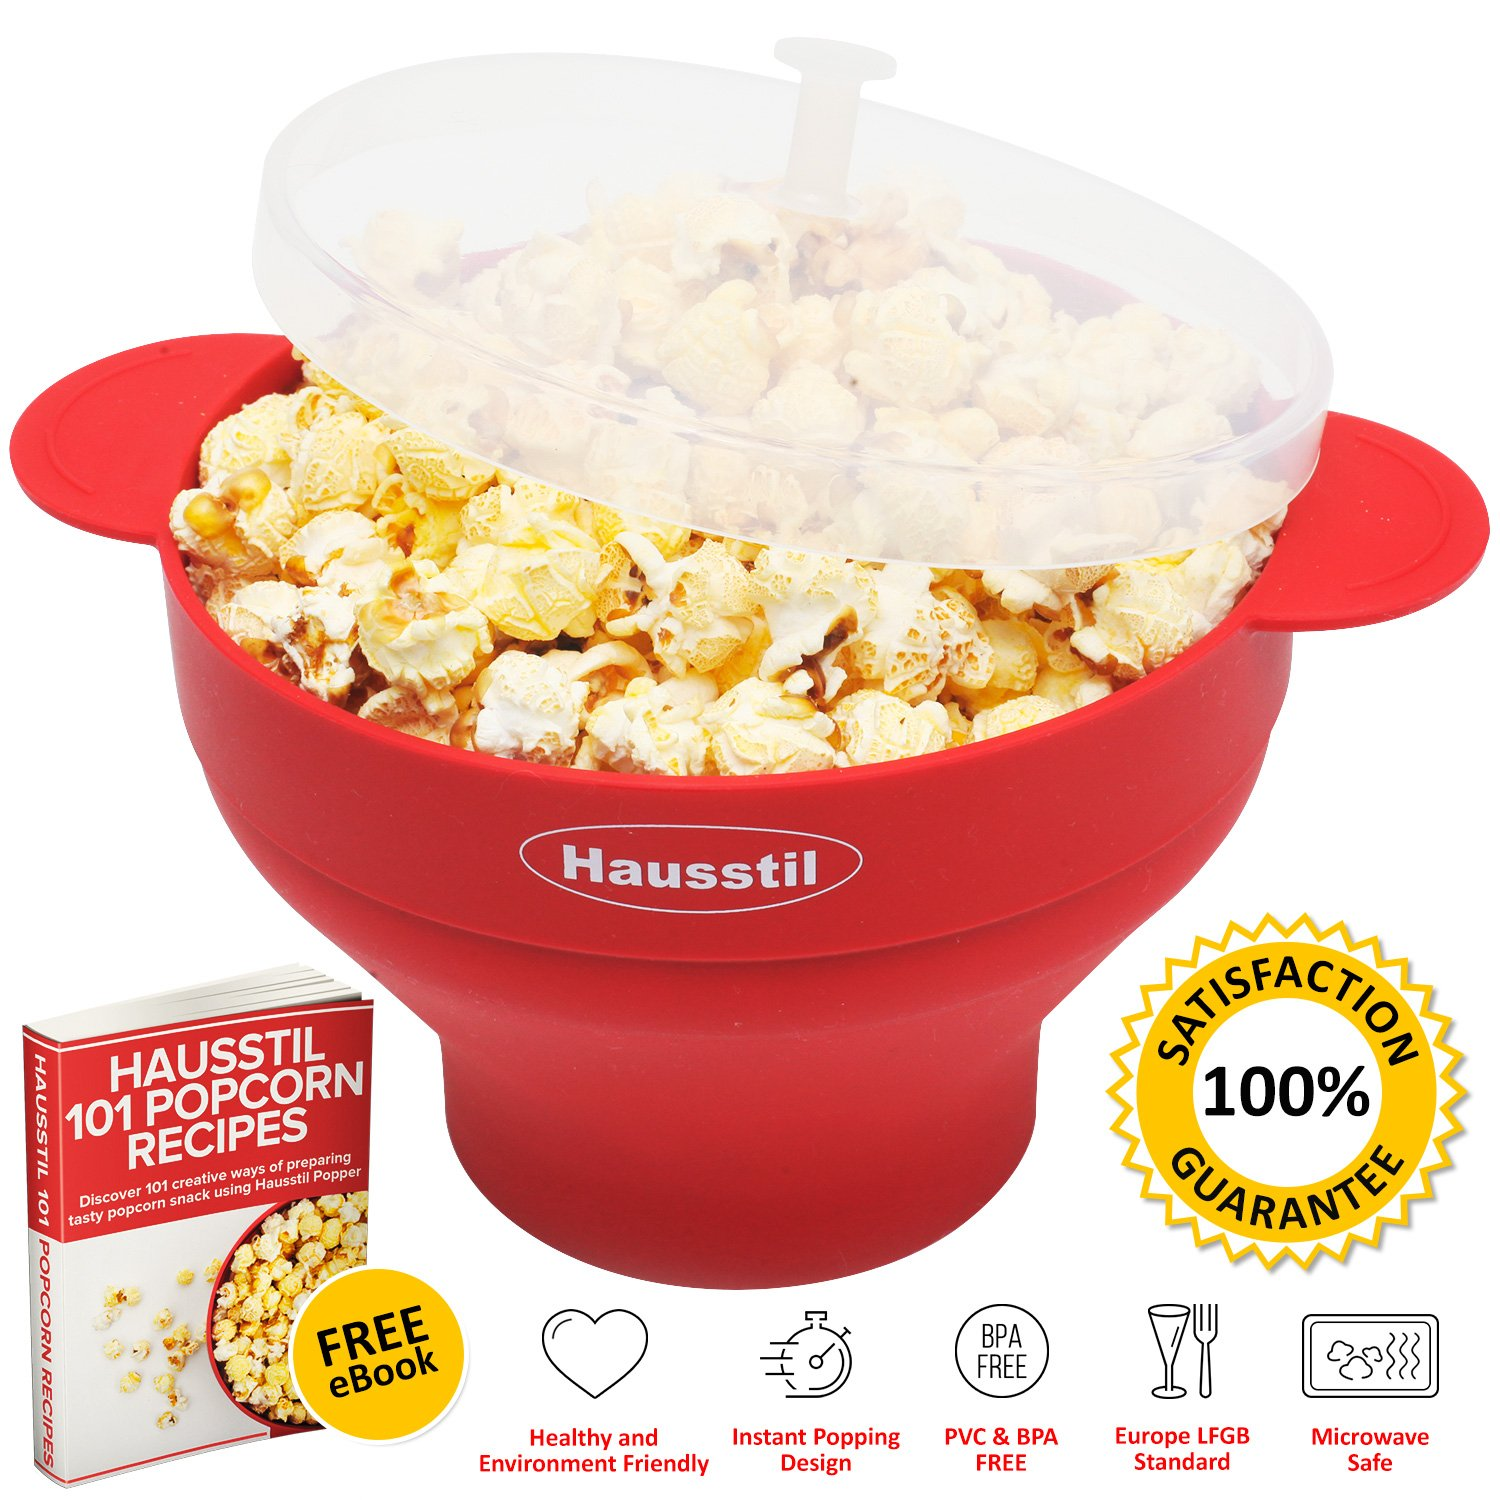 Microwave Air Popcorn Popper - Silicone Popcorn Maker Bowl for Home - Free of PVC & BPA - Healthy Instant Kernels Popping - Save on Popcorn Machine and Bags by Hausstil